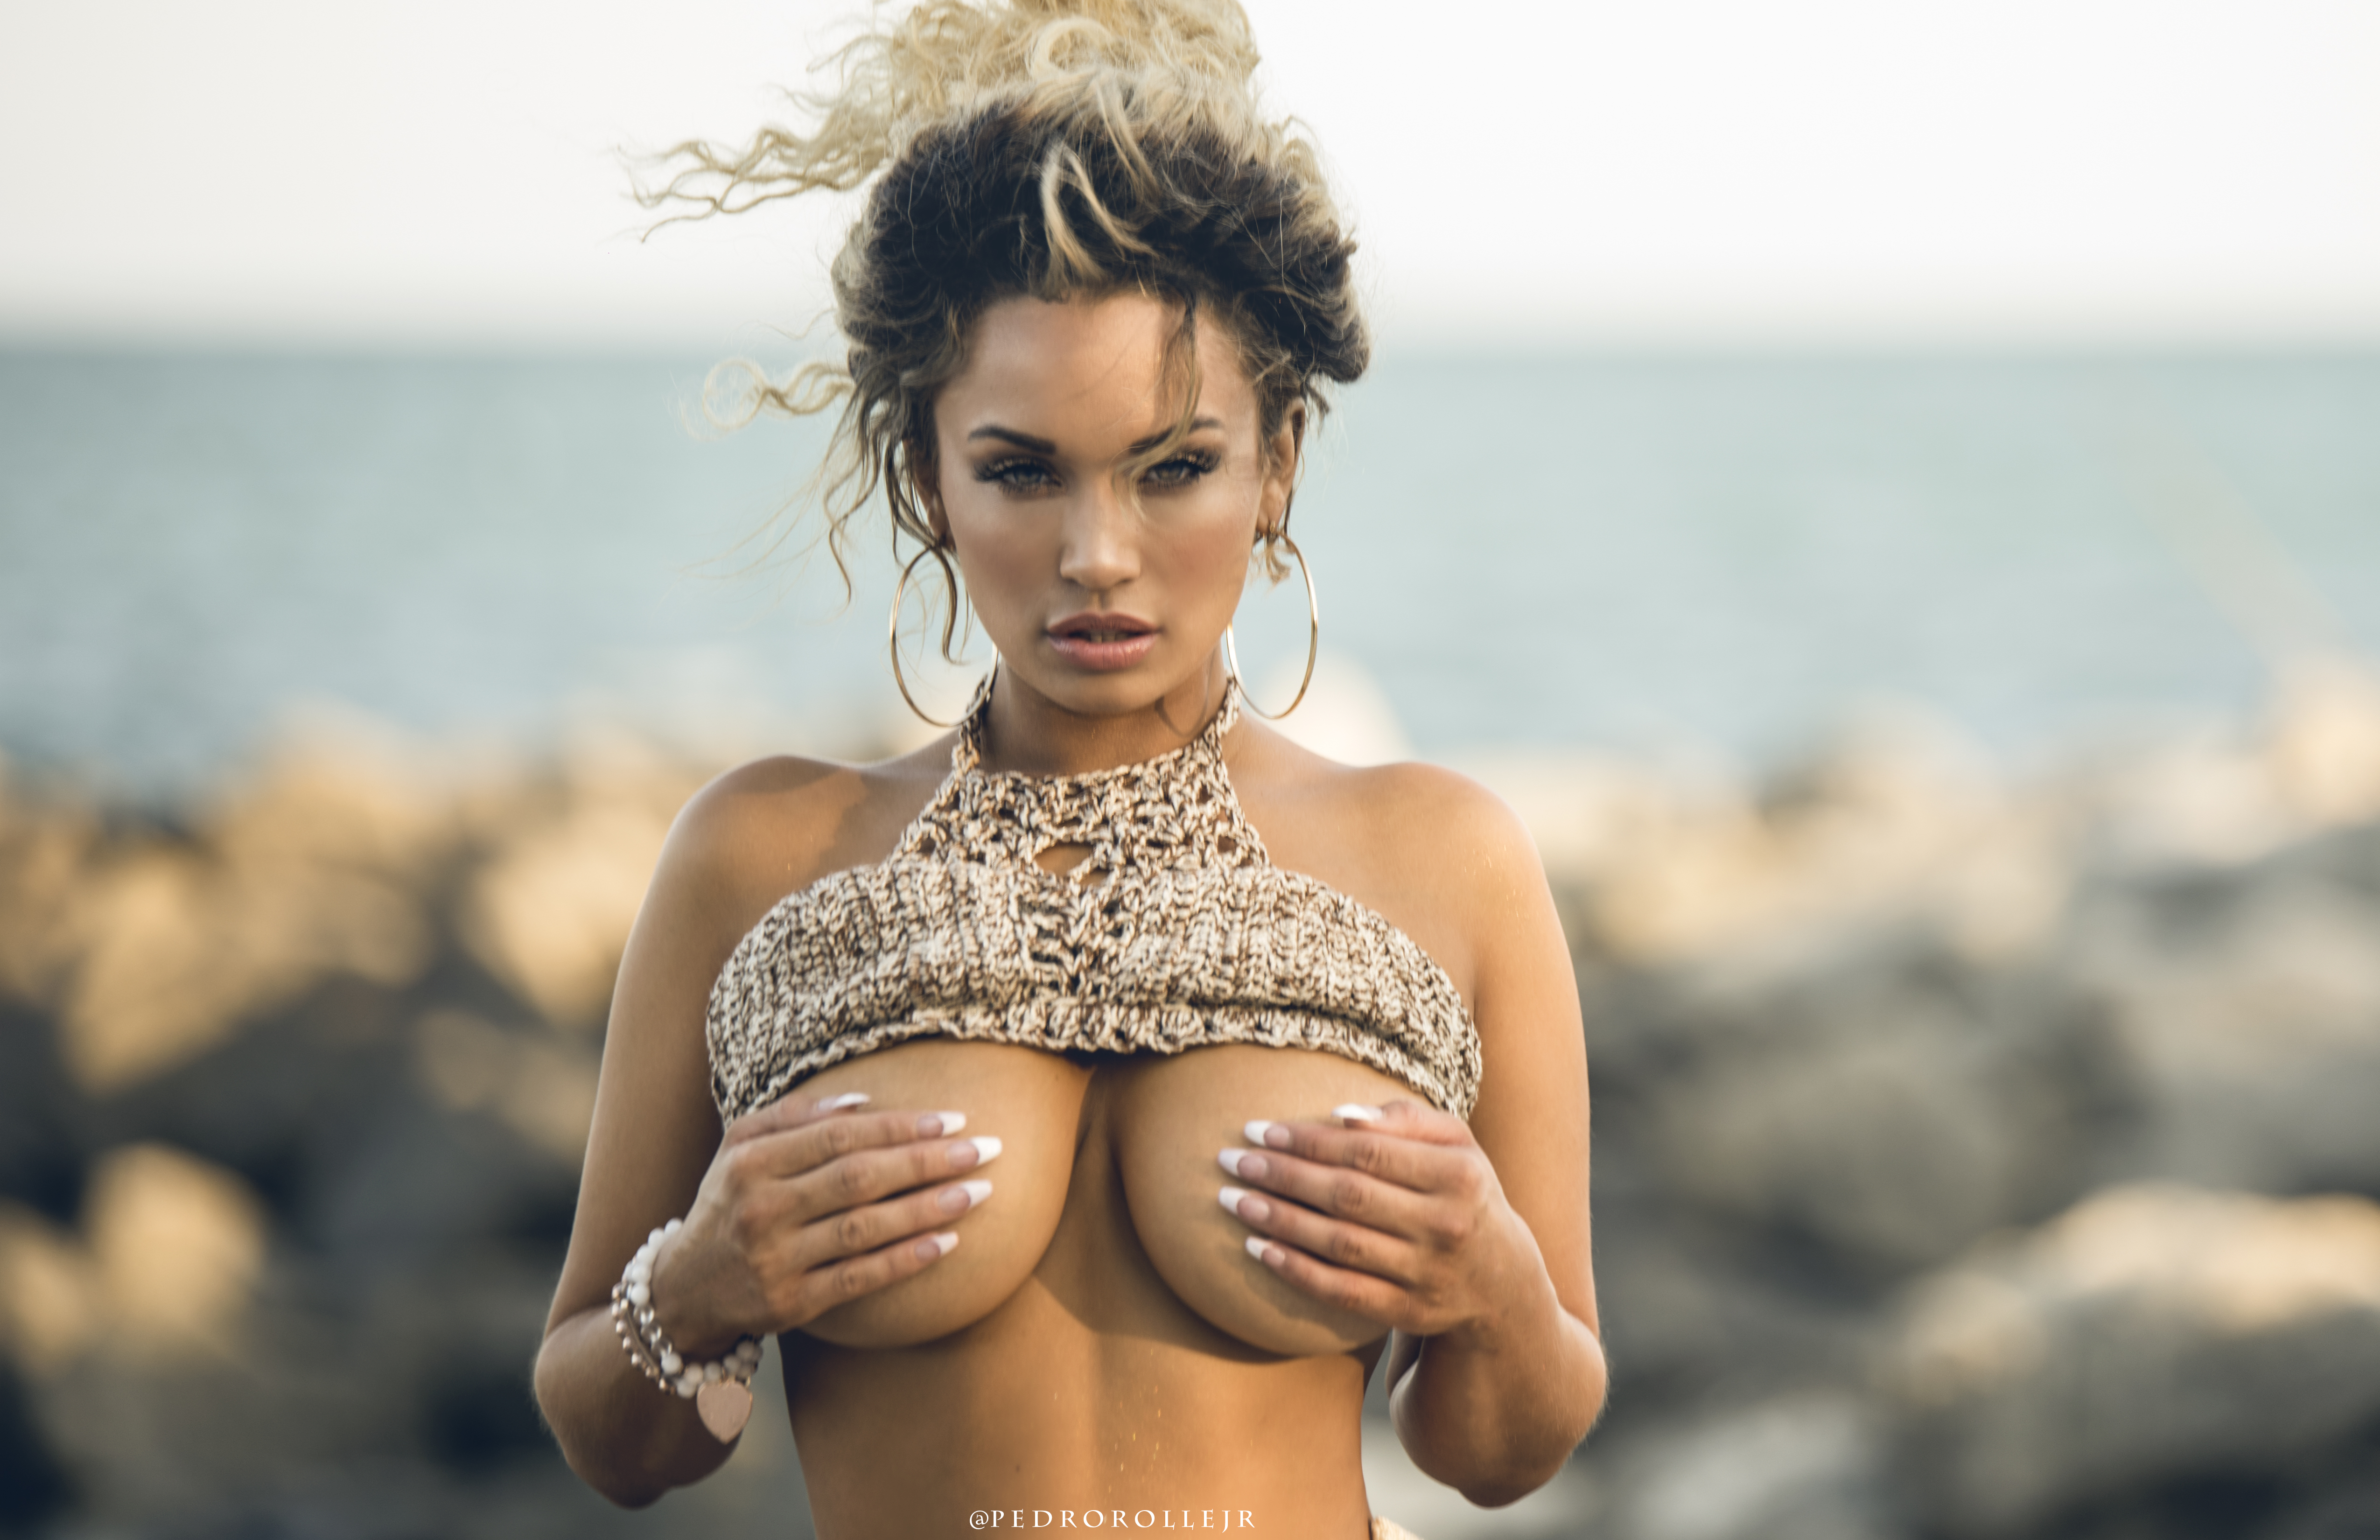 New Beach Set shot by Pedro Rolle Jr. in Members Section!